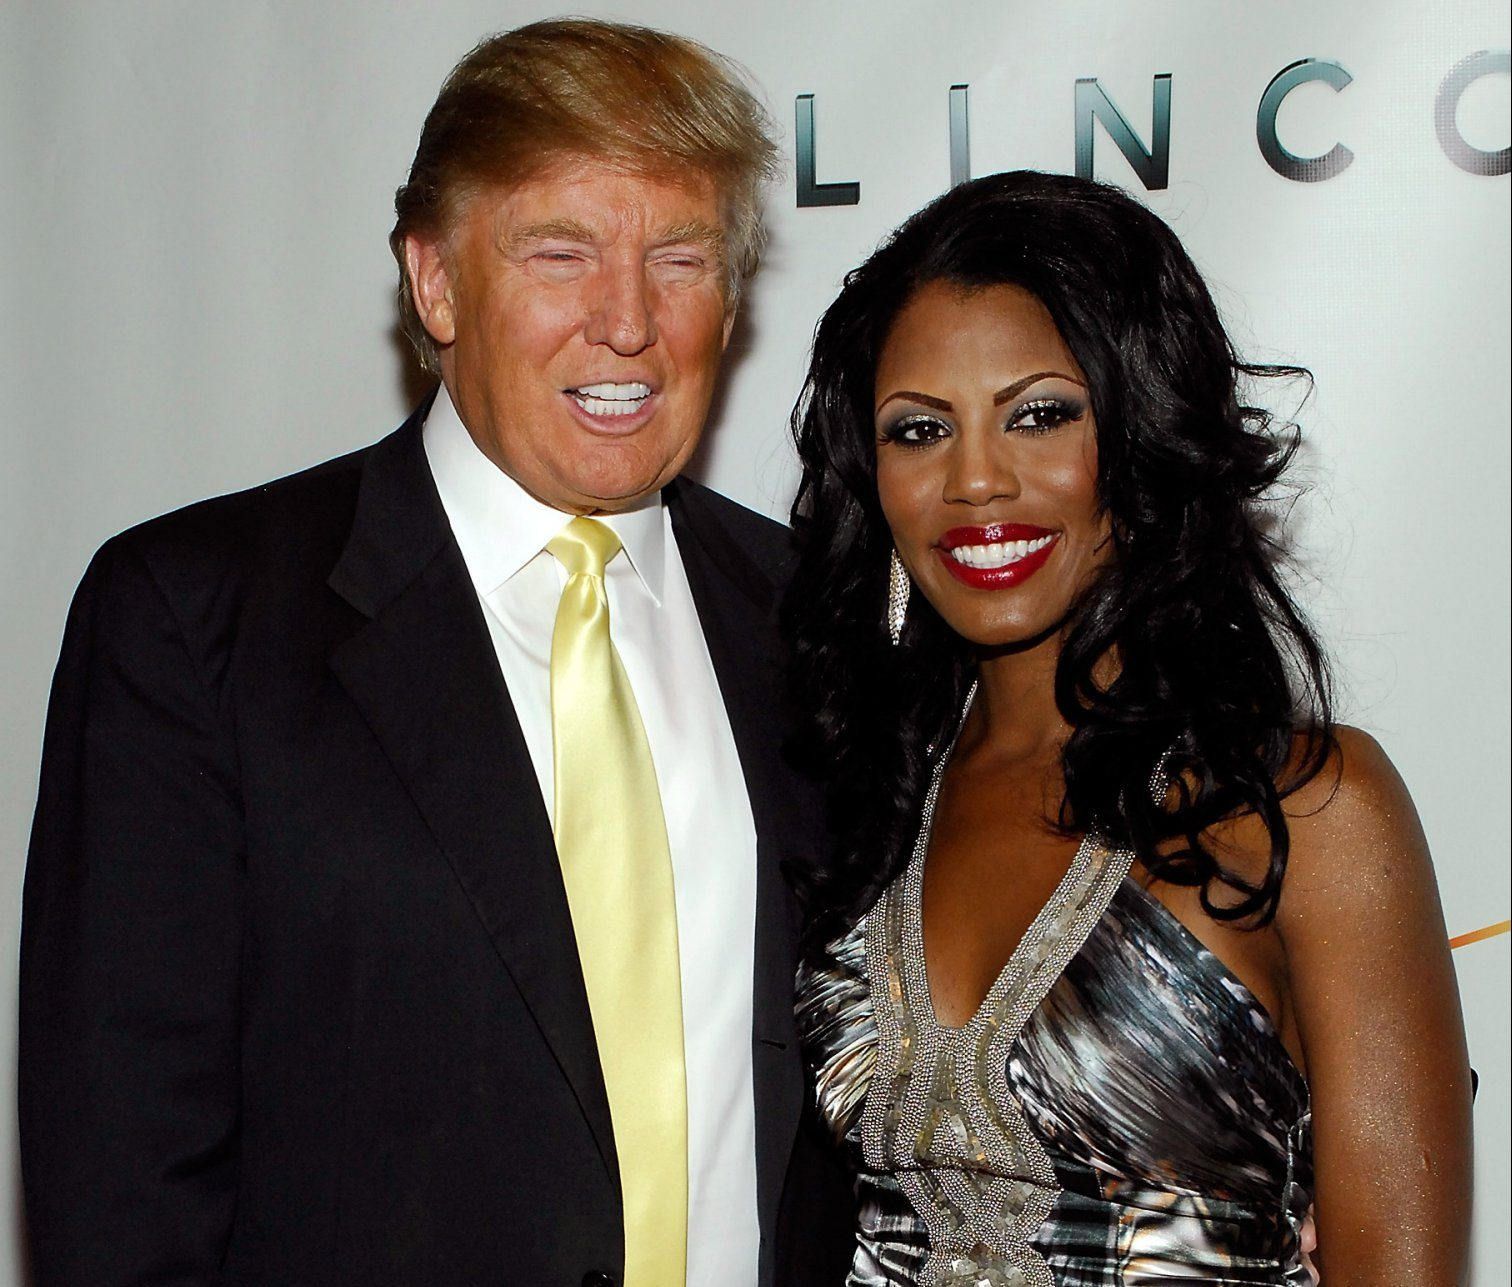 """NEW YORK - JUNE 14: Real estate developer/TV personality Donald Trump and TV personality Omarosa attend """"The Ultimate Merger"""" premiere at Trump Tower on June 14, 2010 in New York City. (Photo by Joe Corrigan/Getty Images)"""